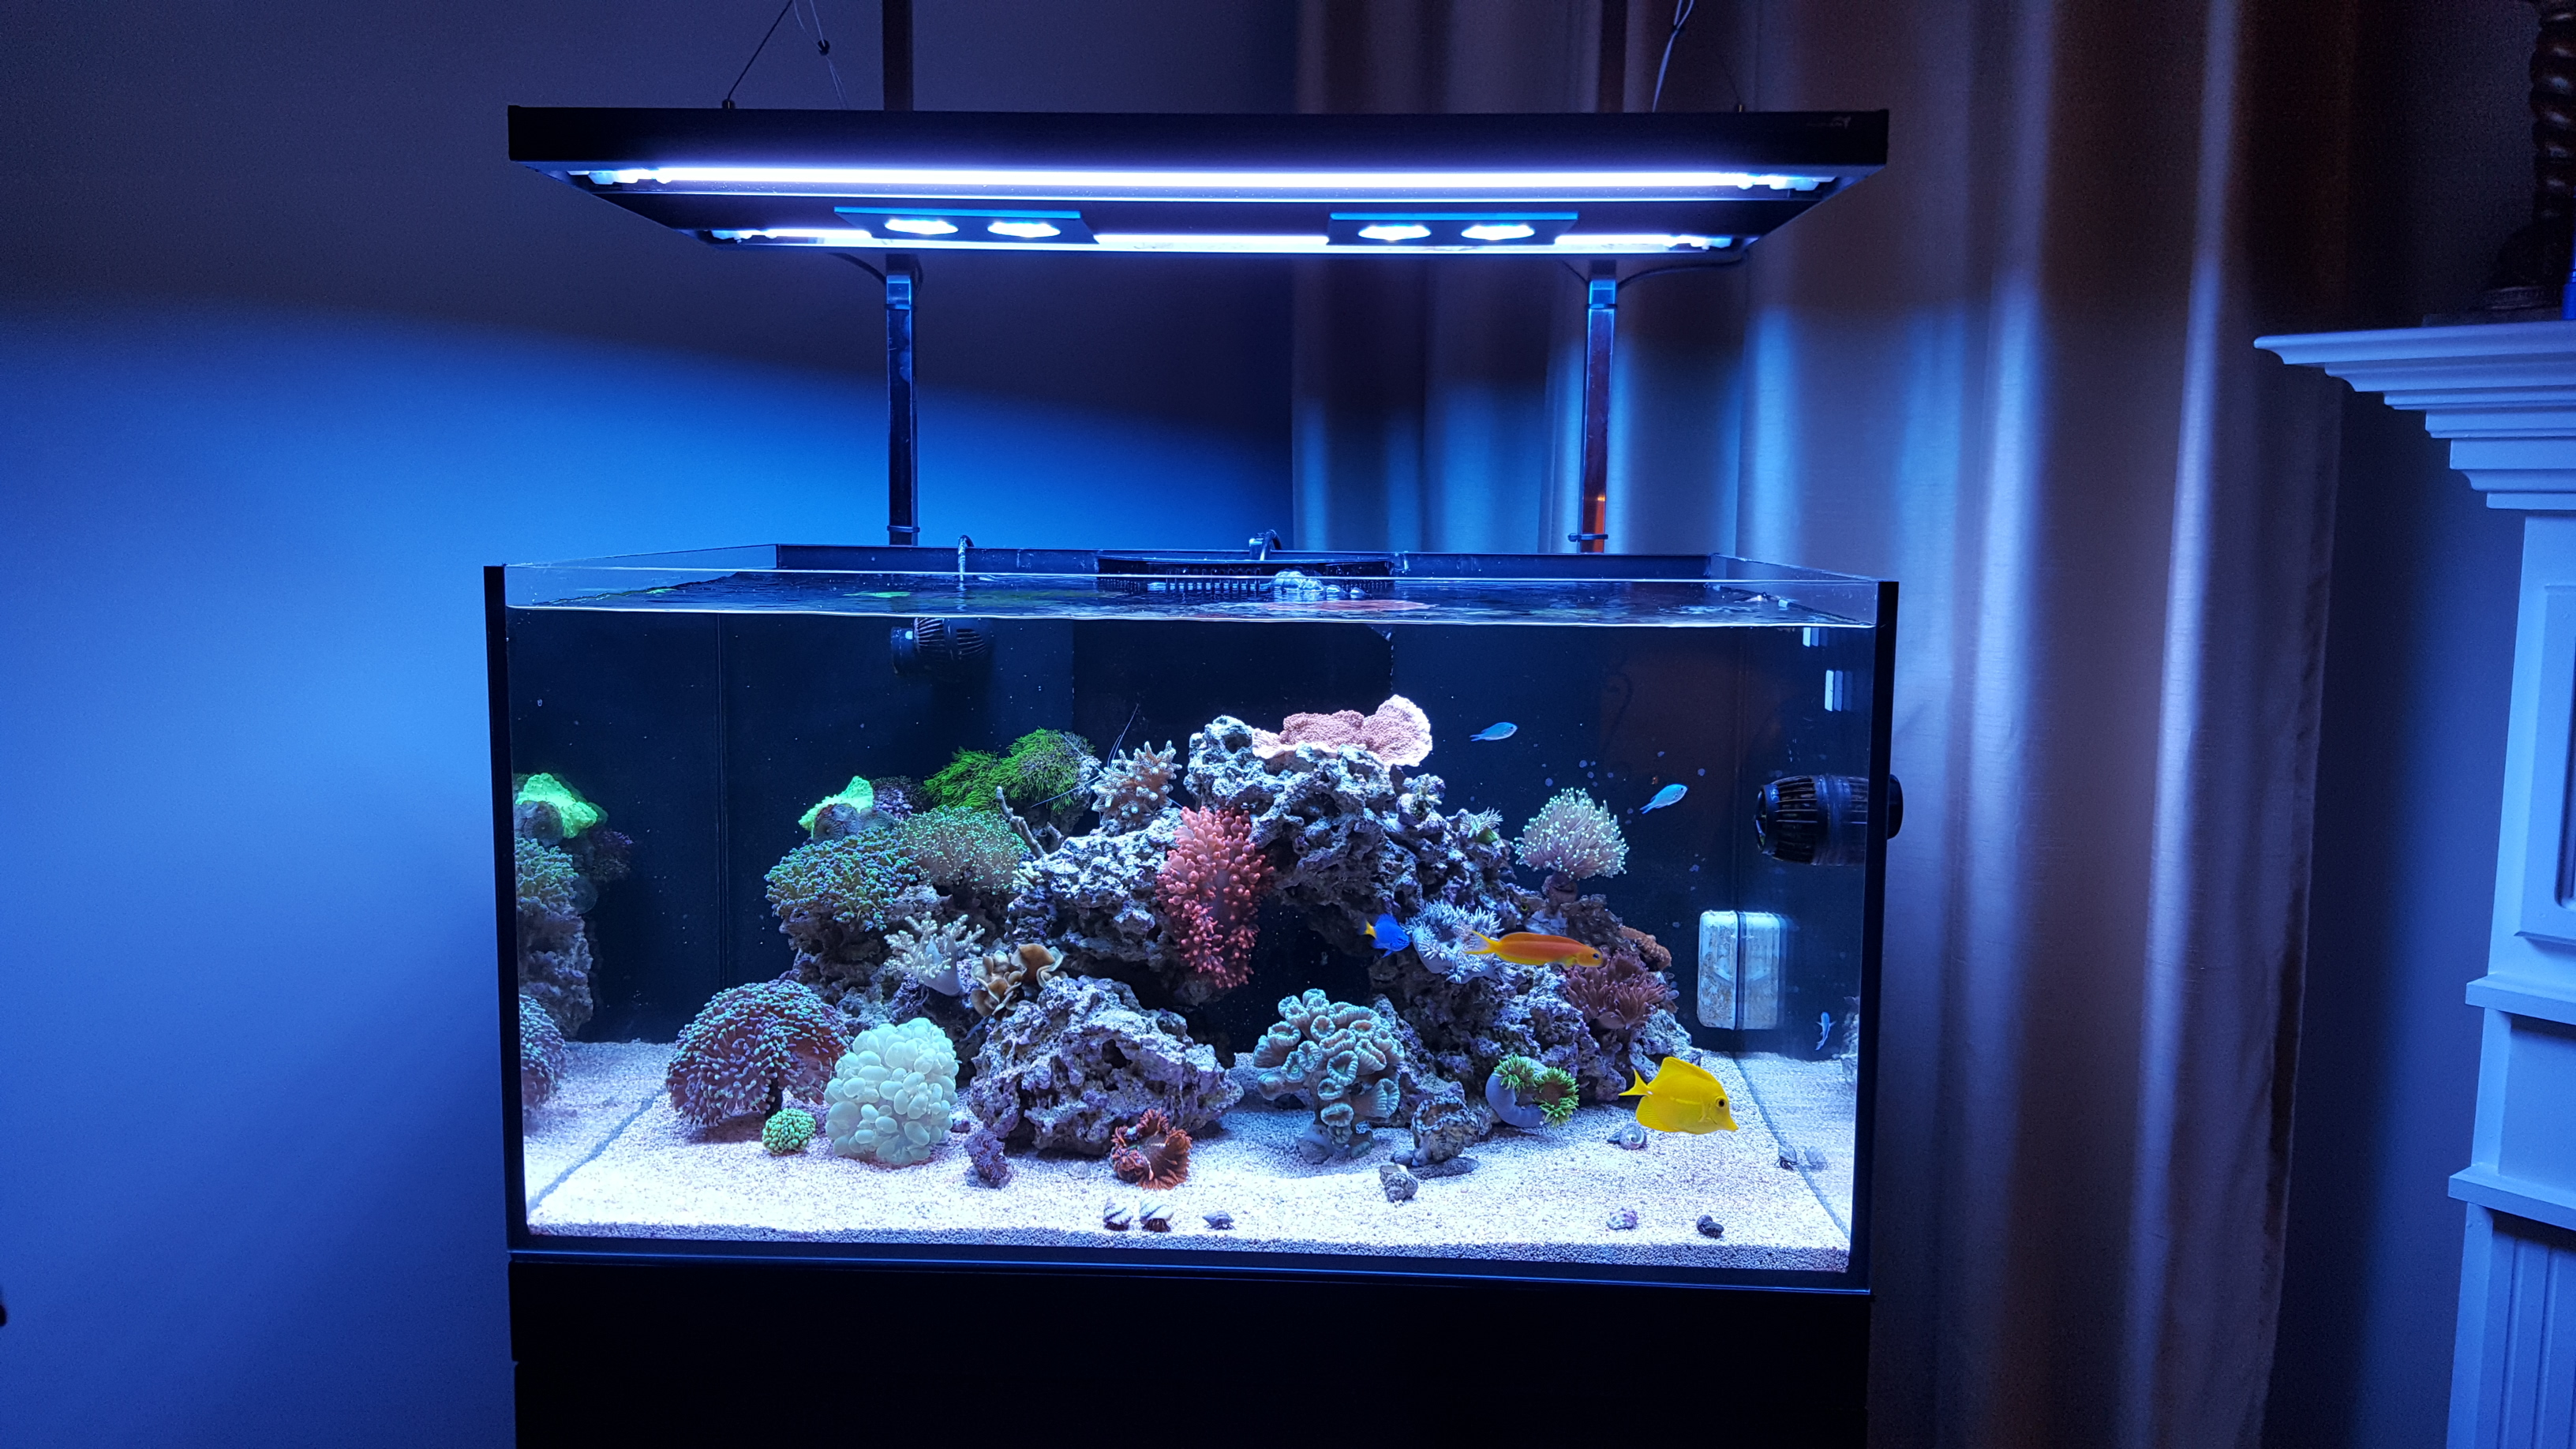 Hybrid T5 Light 36 Inch Fixture with LED Mounting System - Aquatic Life -  Marine Depot